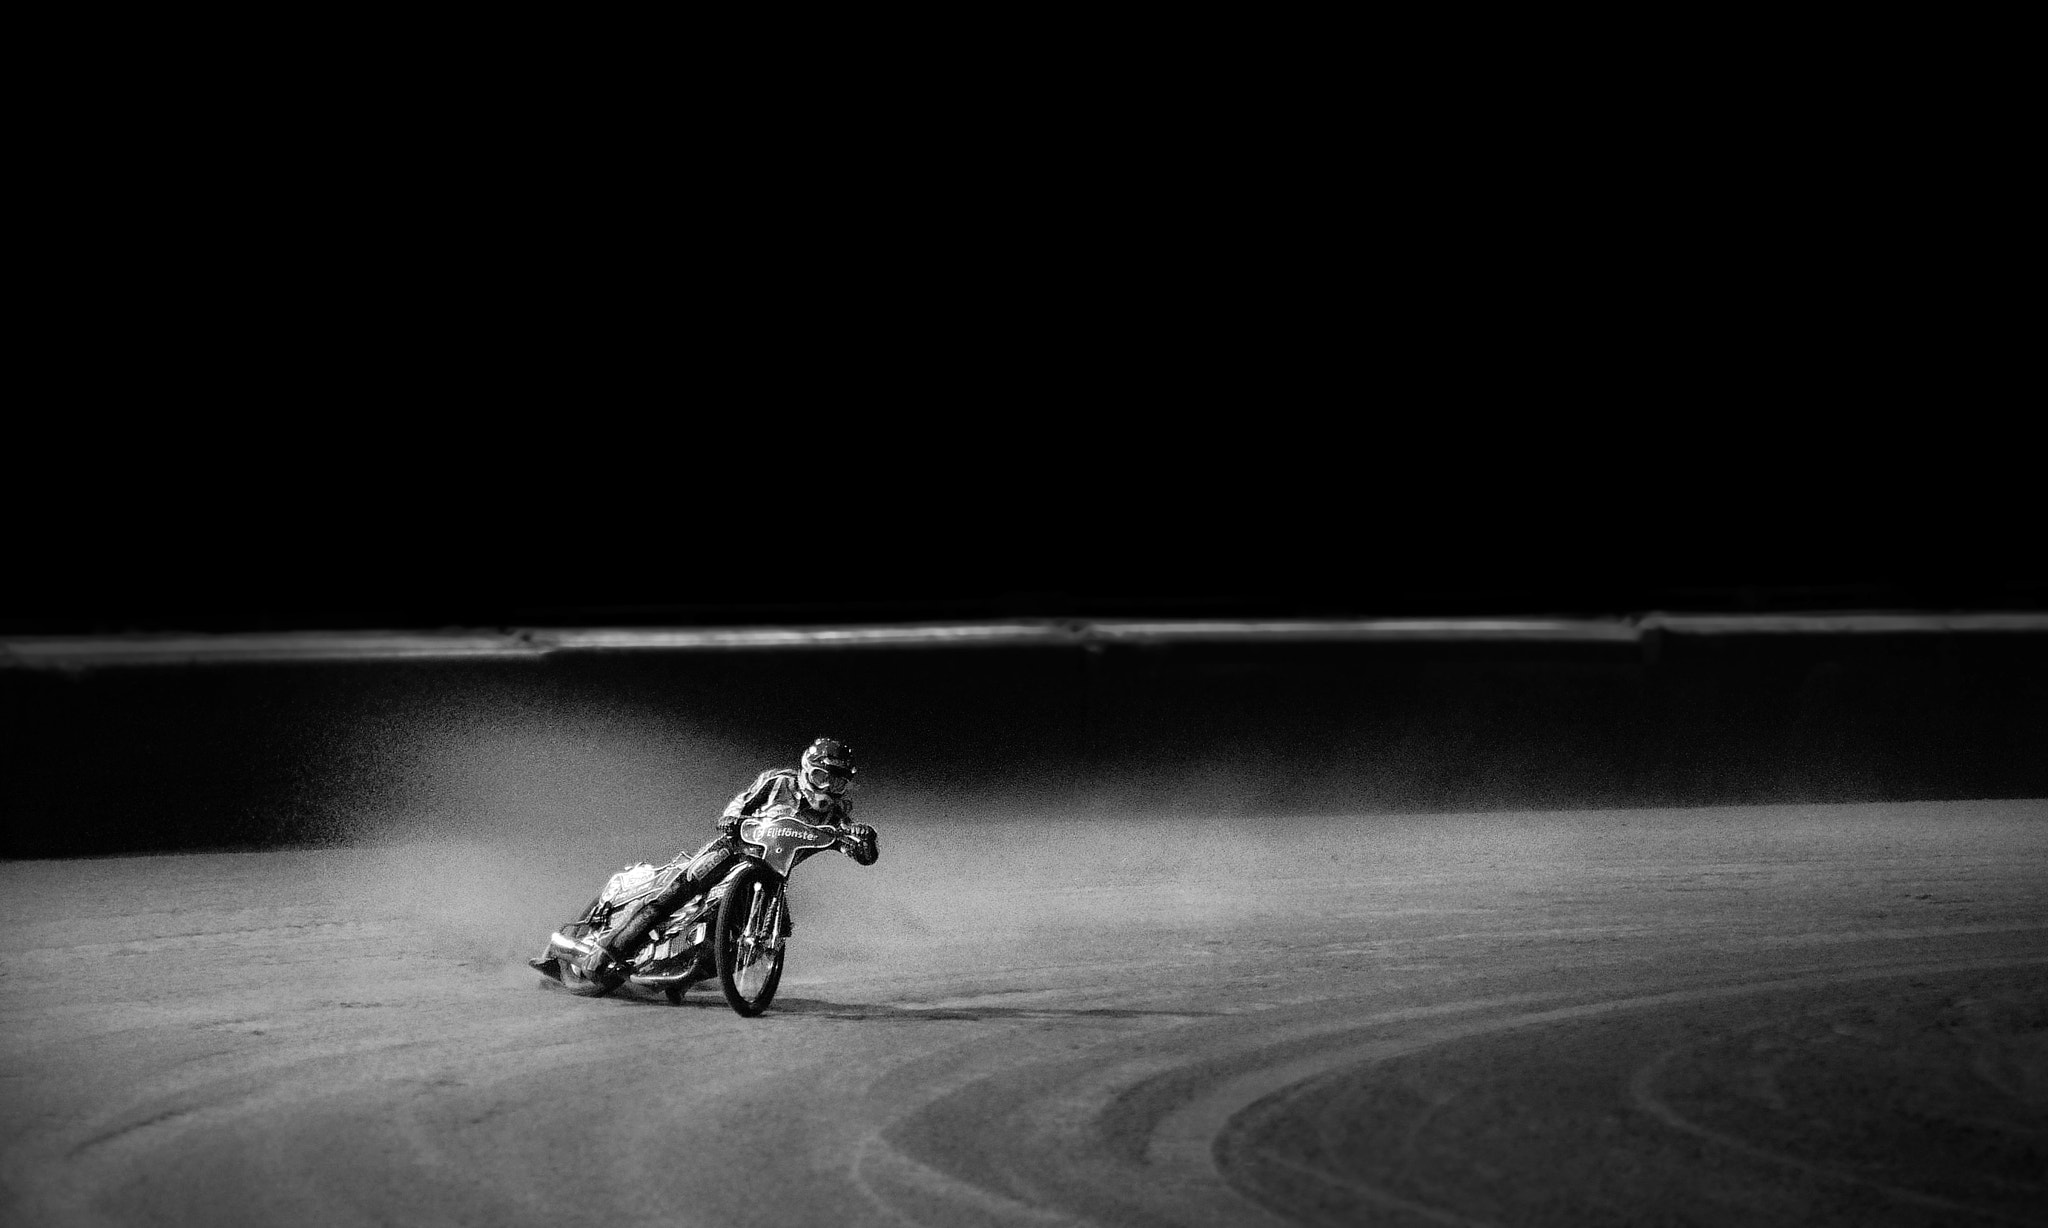 Photograph Speedway by Thomas Karlberg on 500px